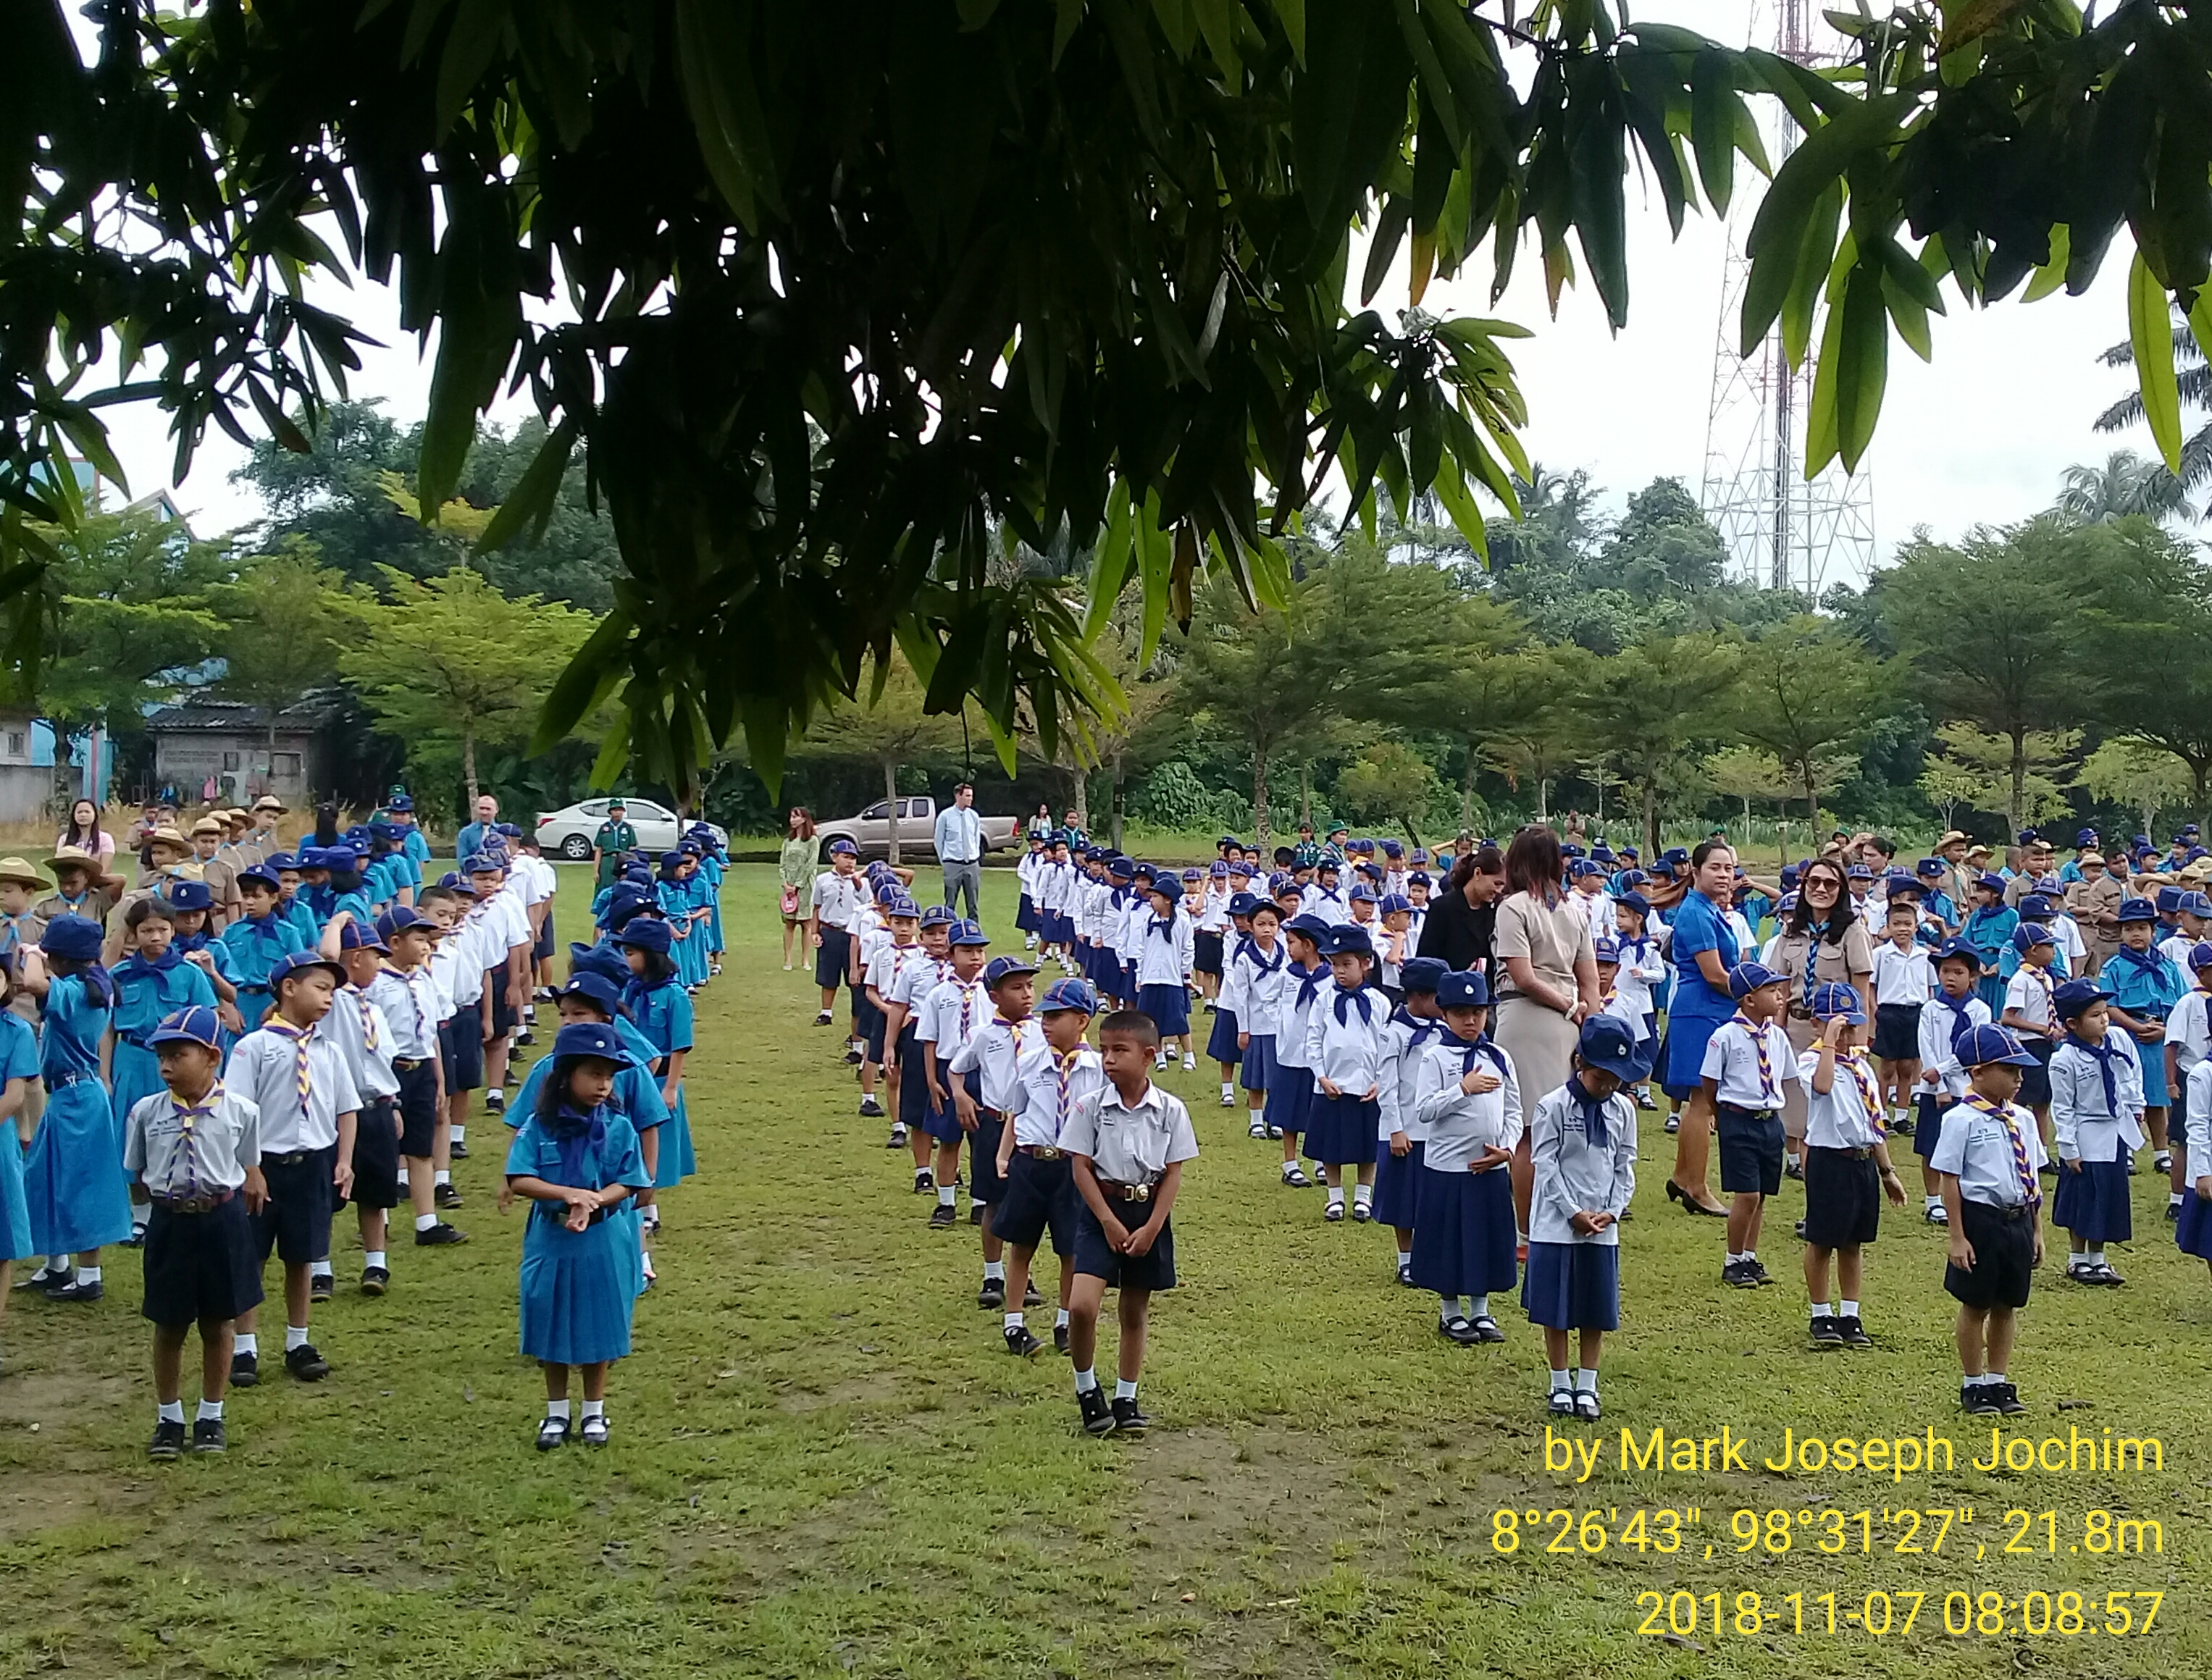 Scouts ready for inspection during morning assembly/flag ceremony at Ban Thai Chang Municipal School in Phang Nga Town, Thailand. Photo taken by Mark Joseph Jochim on November 7, 2018.